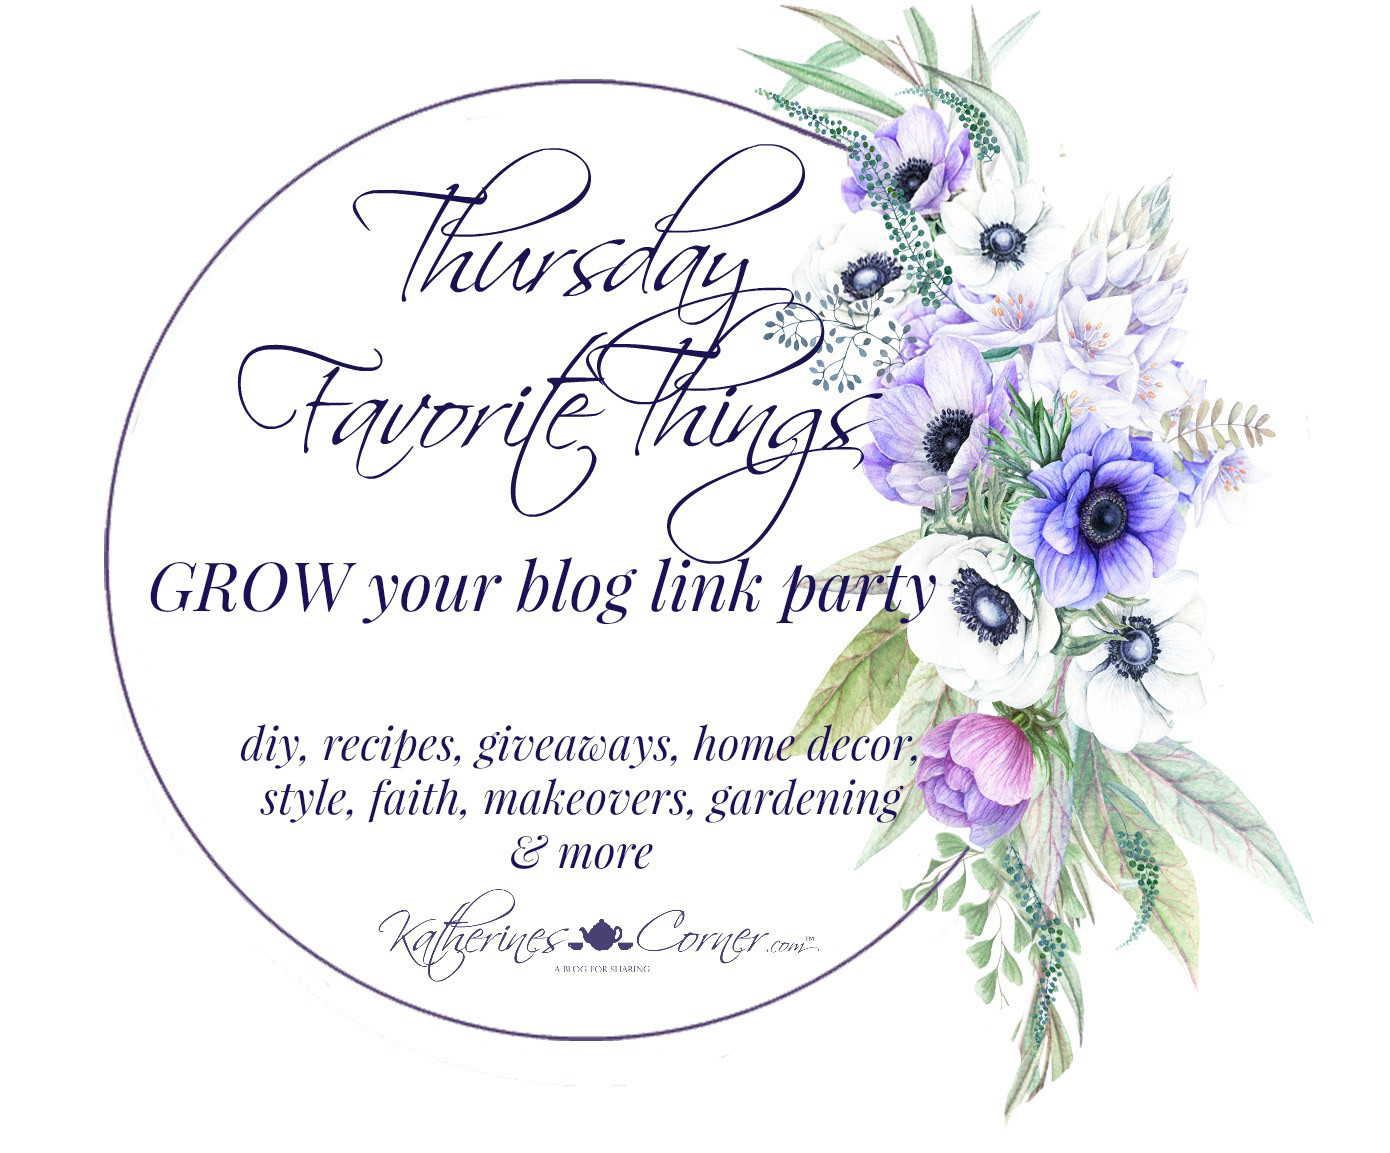 I think I Can Do That Thursday Favorite Things Link Party